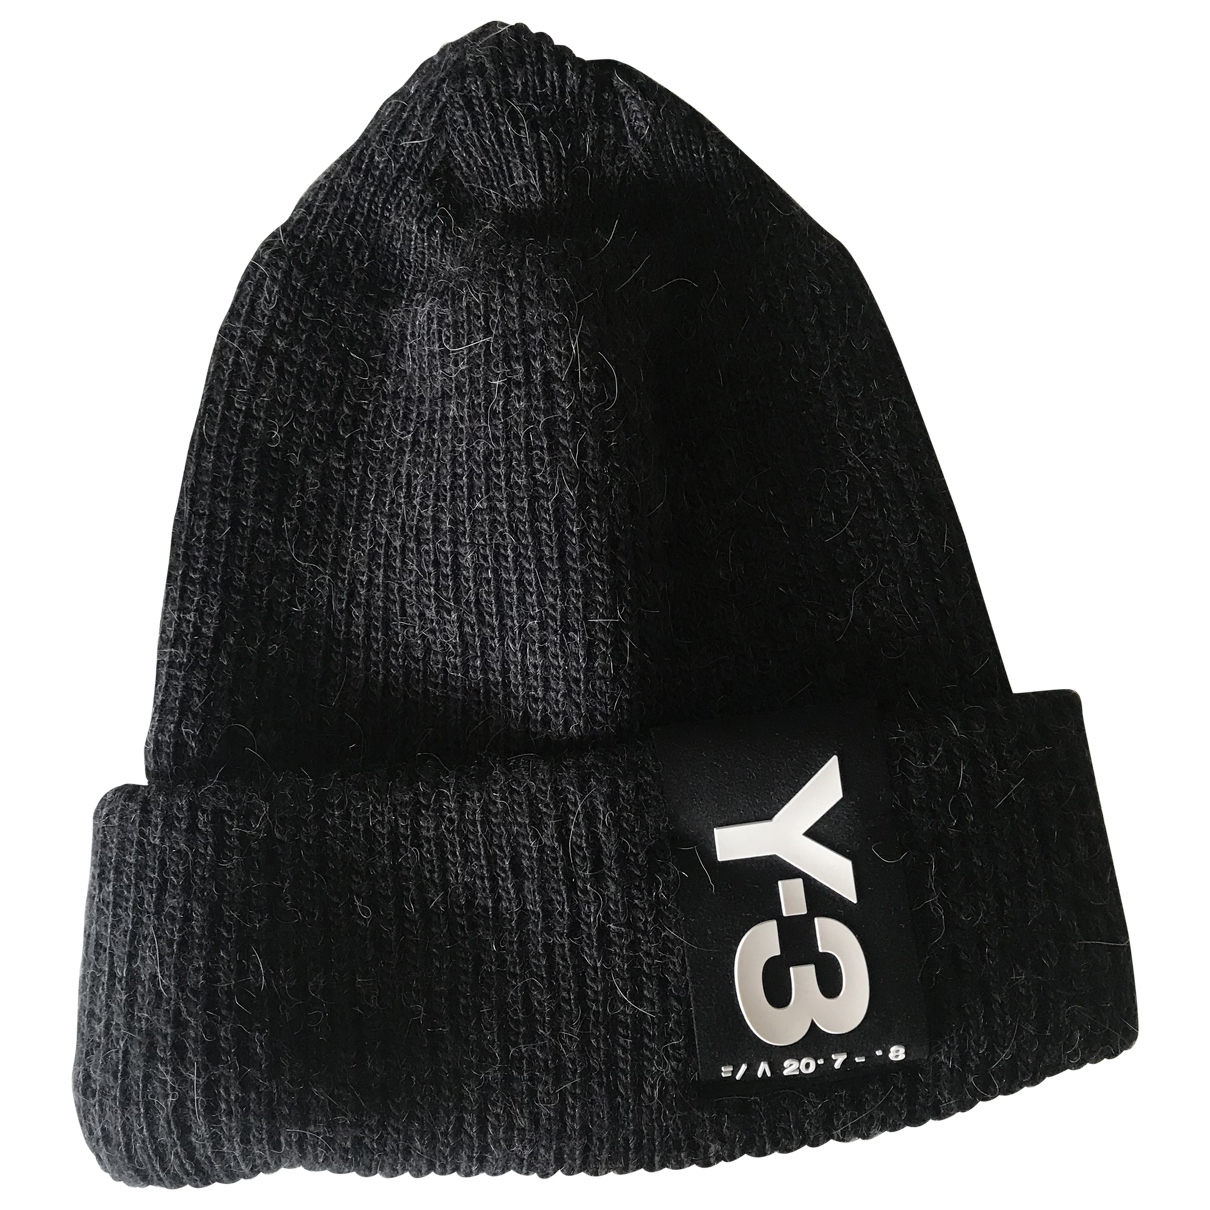 Y-3 \N Black Wool hat & pull on hat for Men 23 Inches